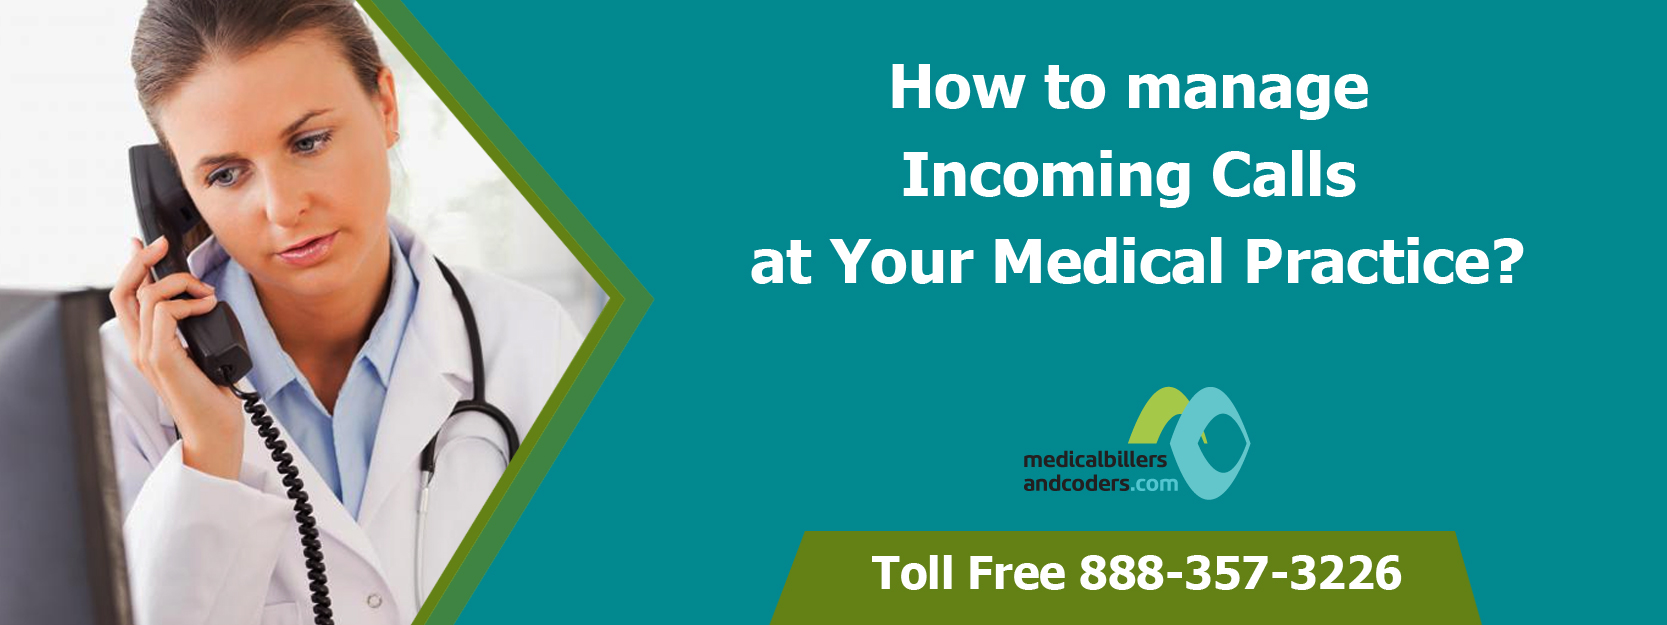 How to Manage Incoming Calls at Your Medical Practice?